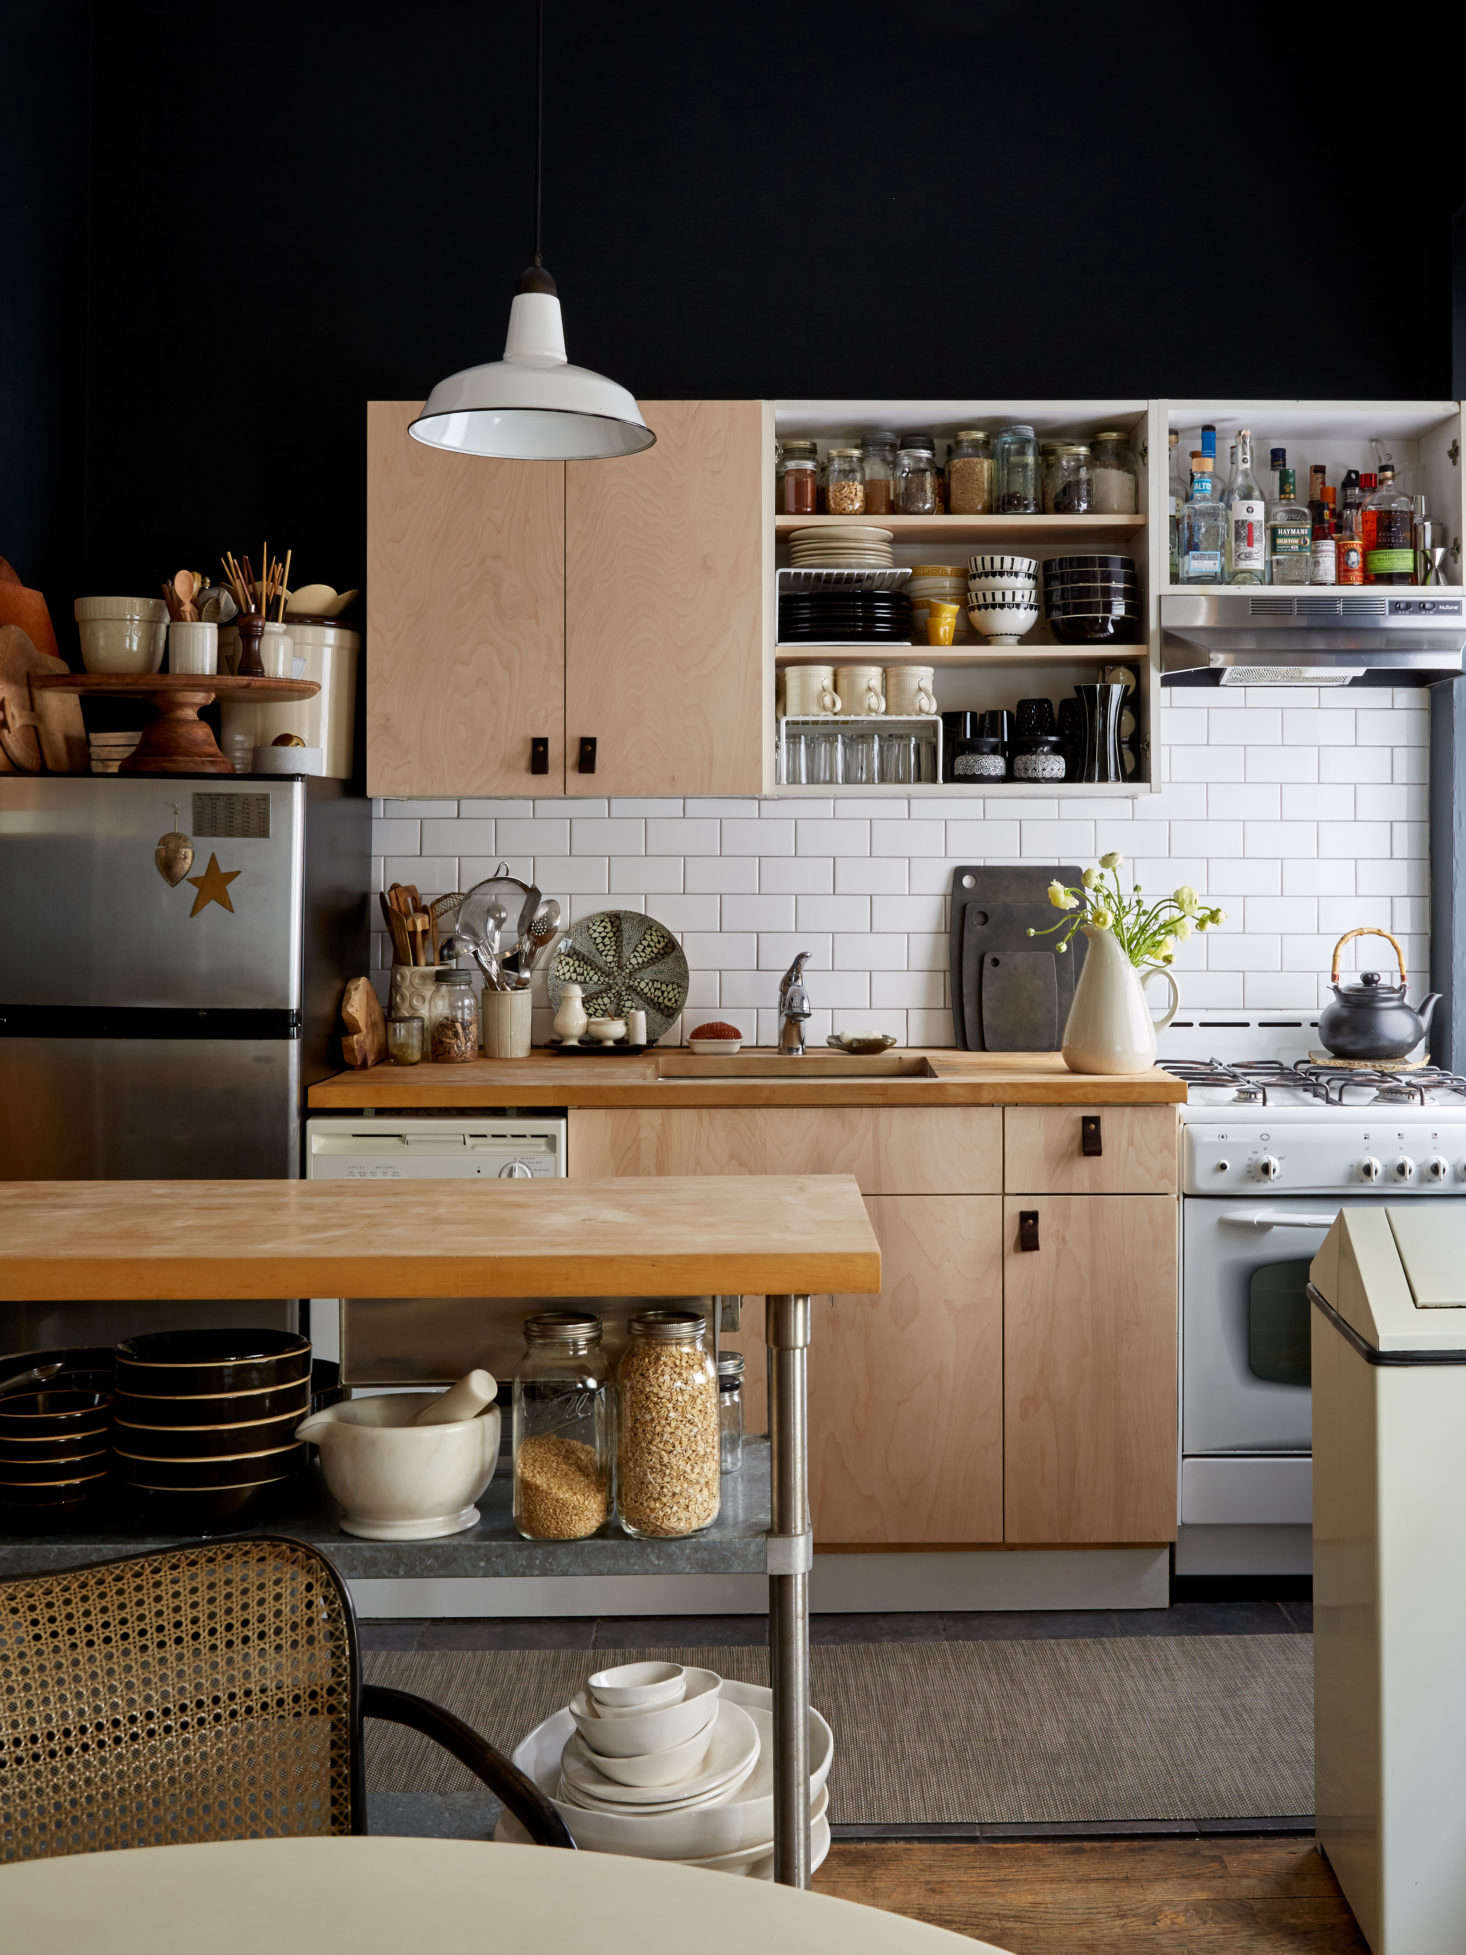 The couple in this New York apartment took their double cabinet doors off of one unit. Fortunately, the cabinet boxes are frameless—no framework or center panel divides the cabinet space. SeeSmall-Space Solutions:  Affordable Tips from a NYC Creative Couple for a full look.